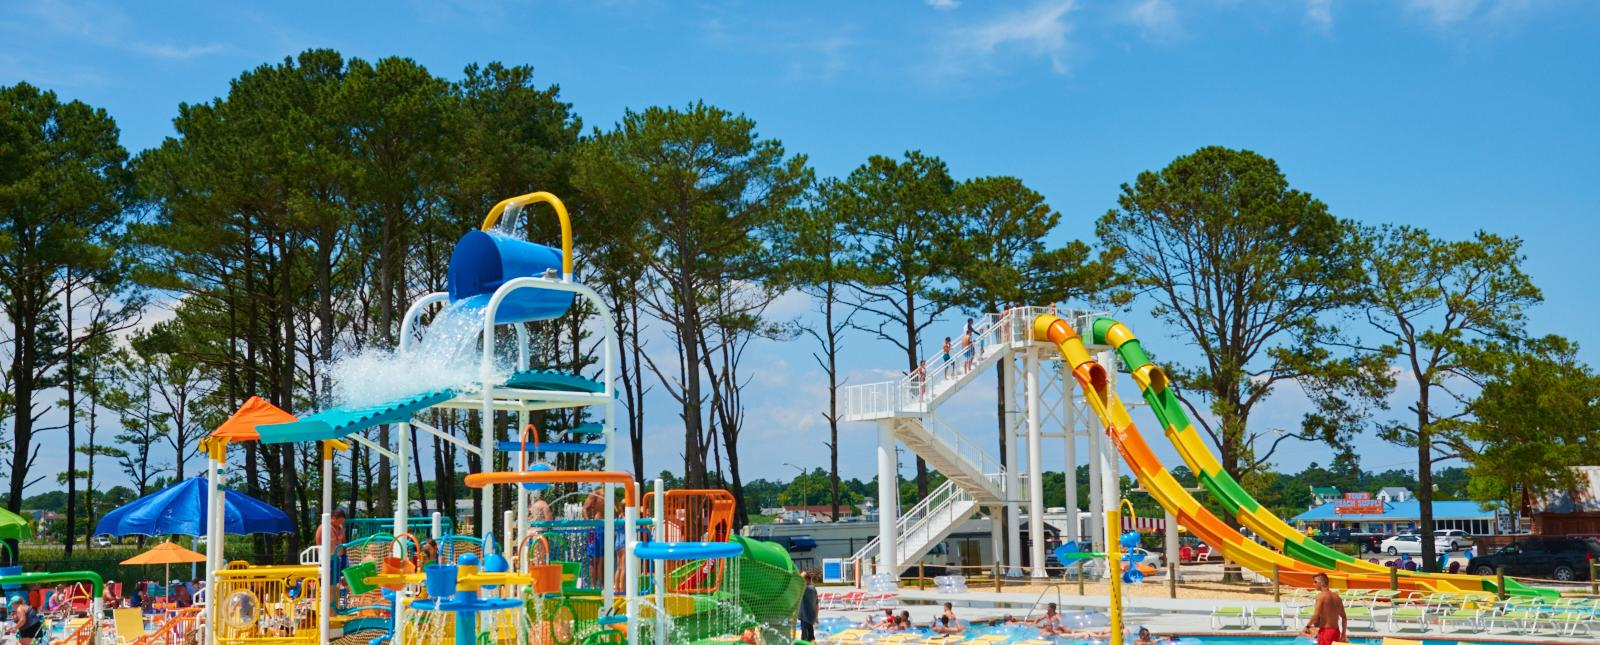 Maui Jack's Waterpark | Chincoteague Island, Virginia